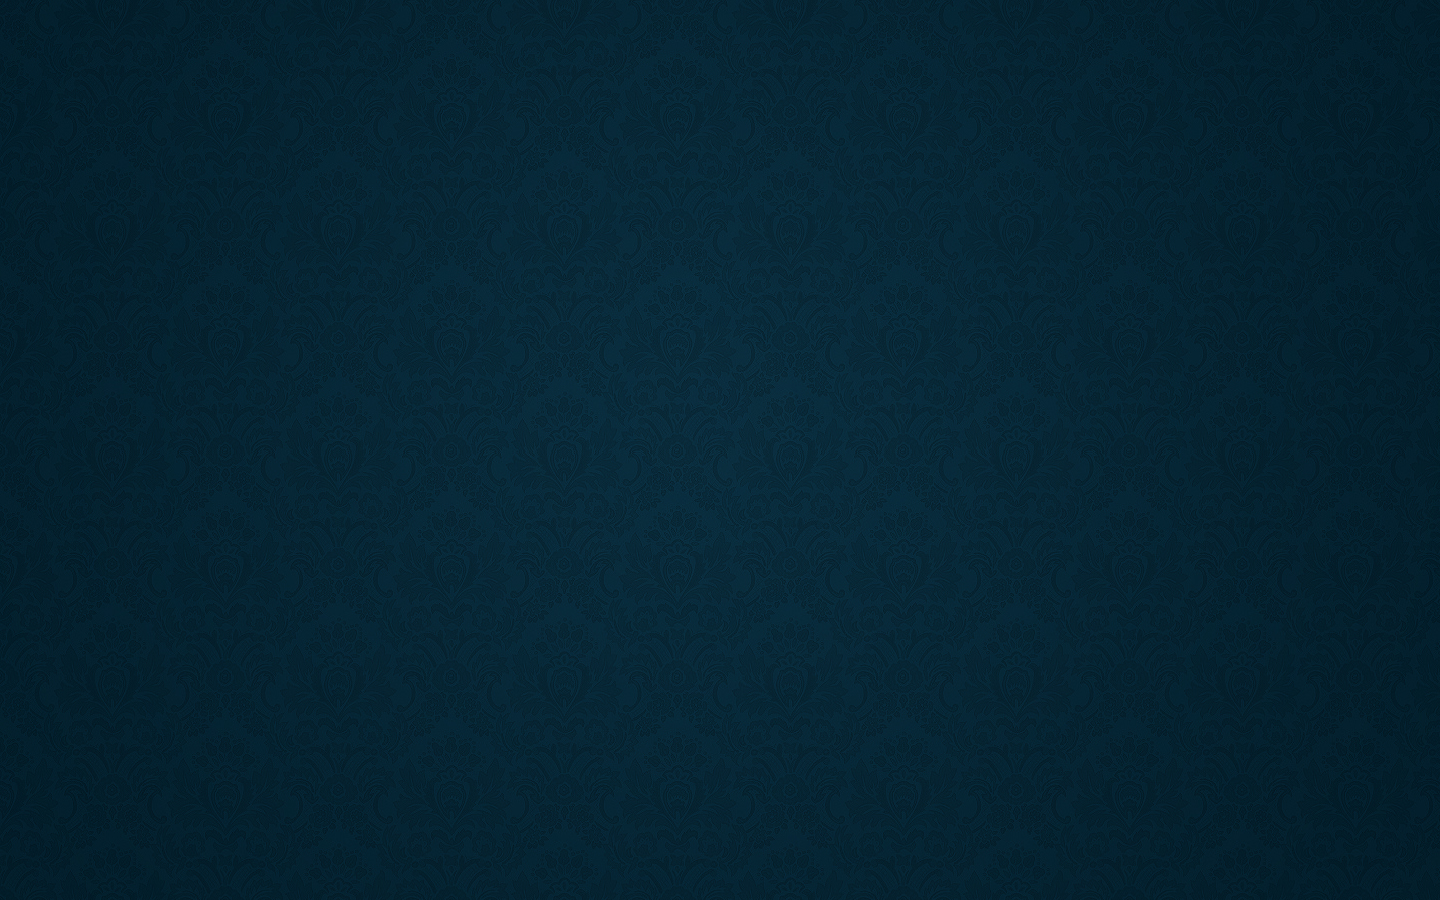 Free Solid Color Wallpaper